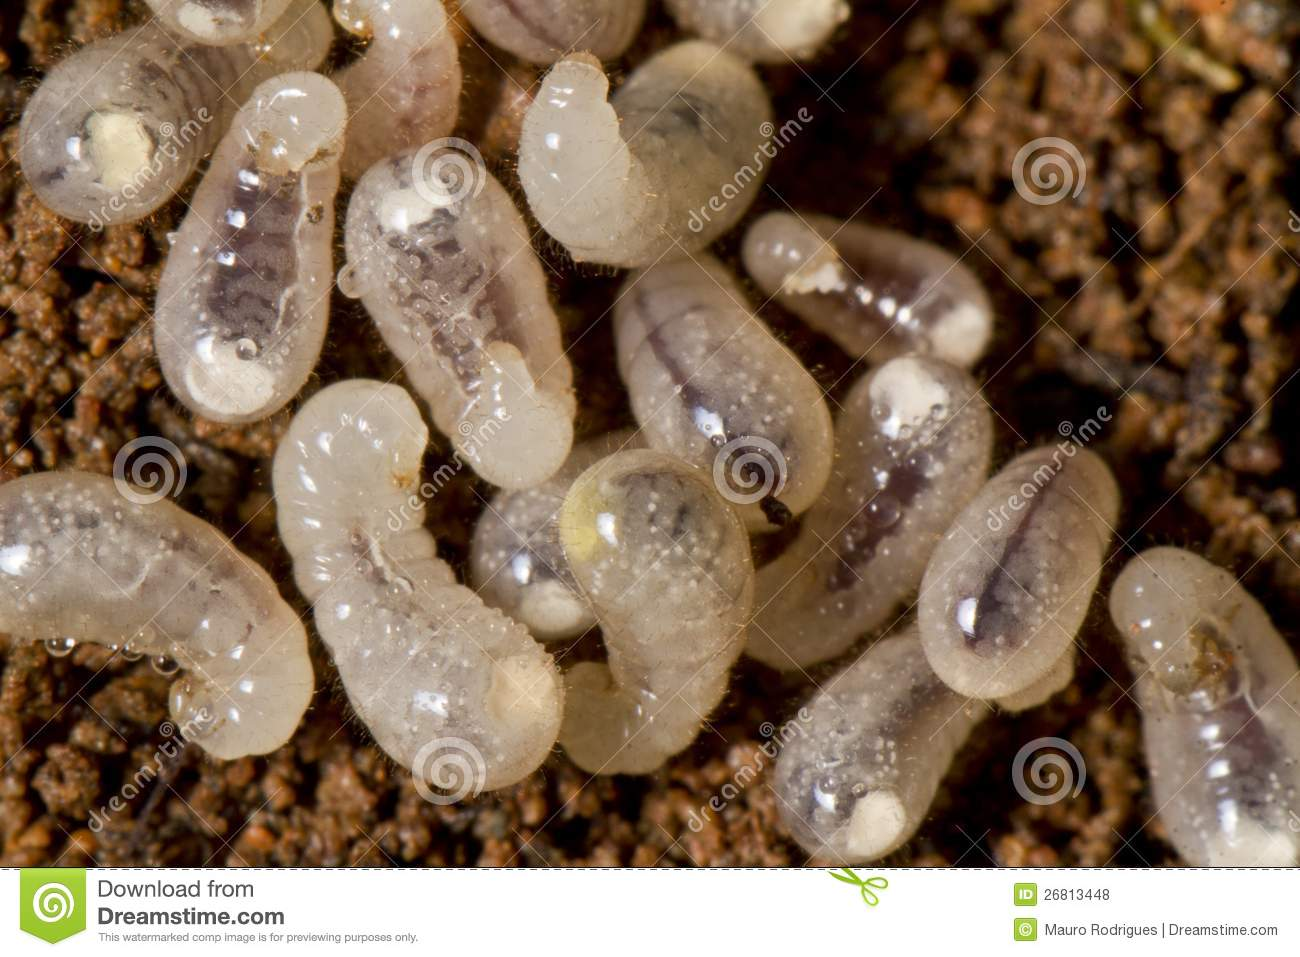 Baby Ant Larva Royalty Free Stock Photos - Image: 26813448